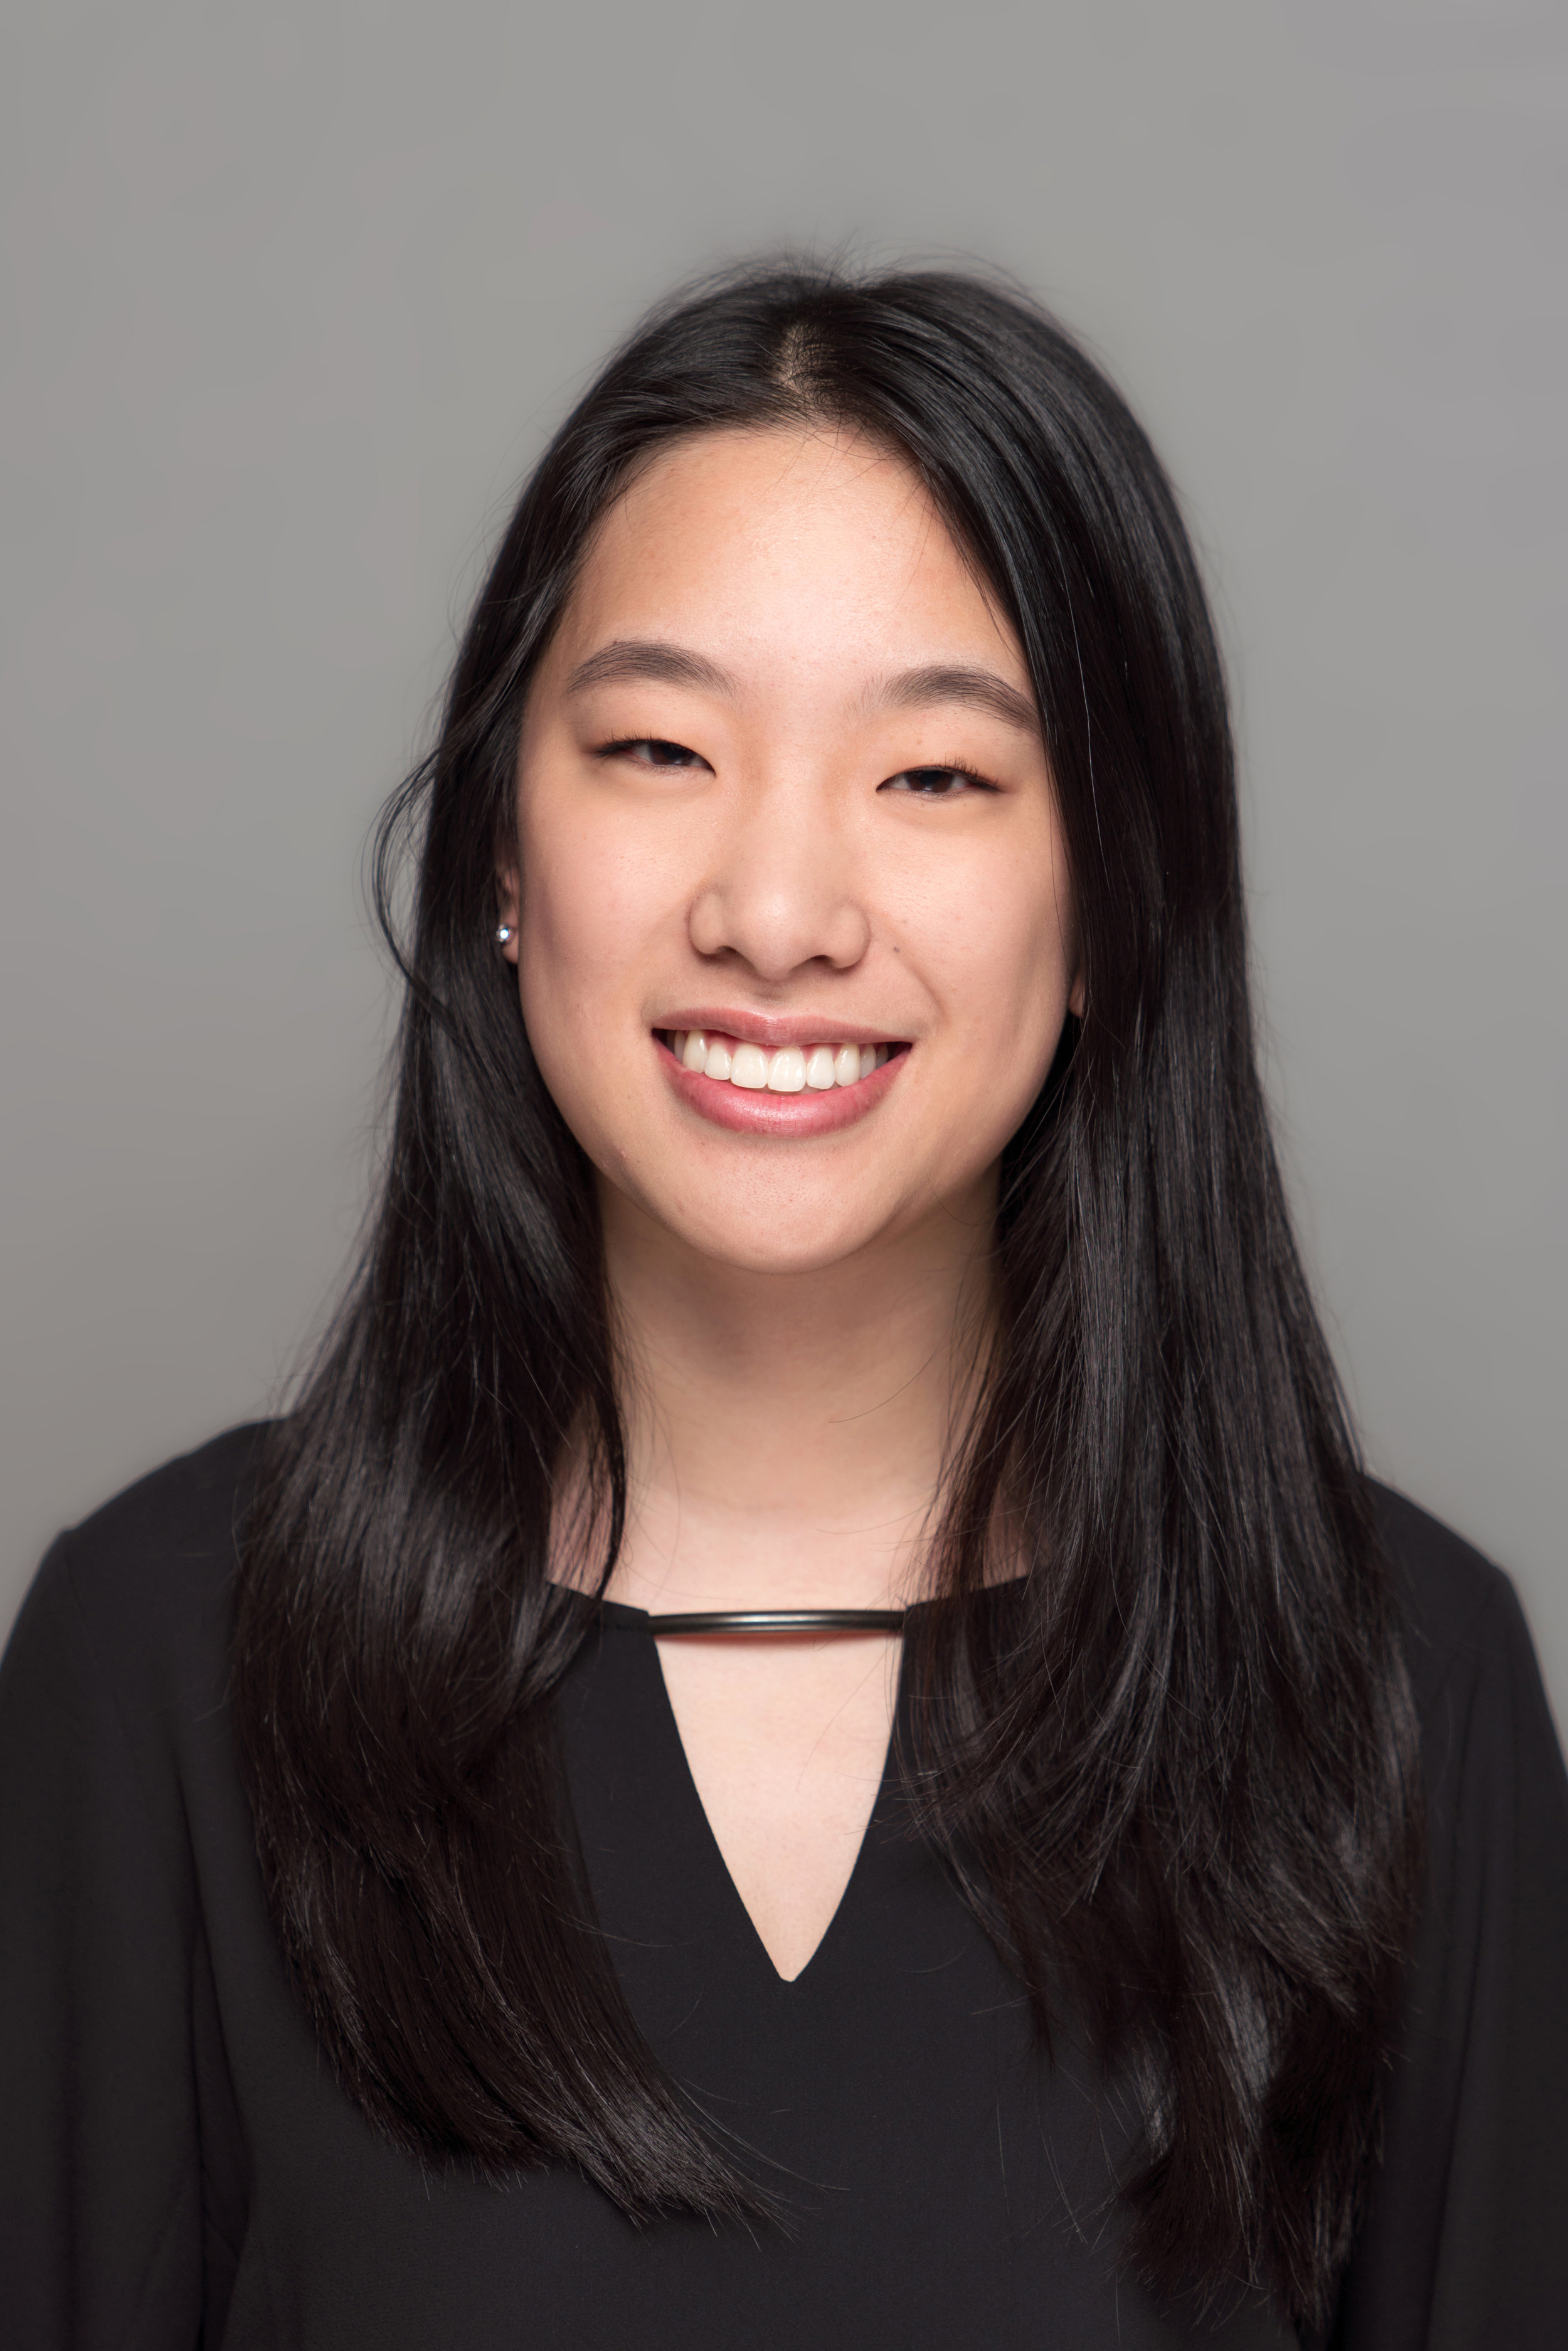 Rachel Hu   Major: Biological Sciences   Career Goal: Pediatrician